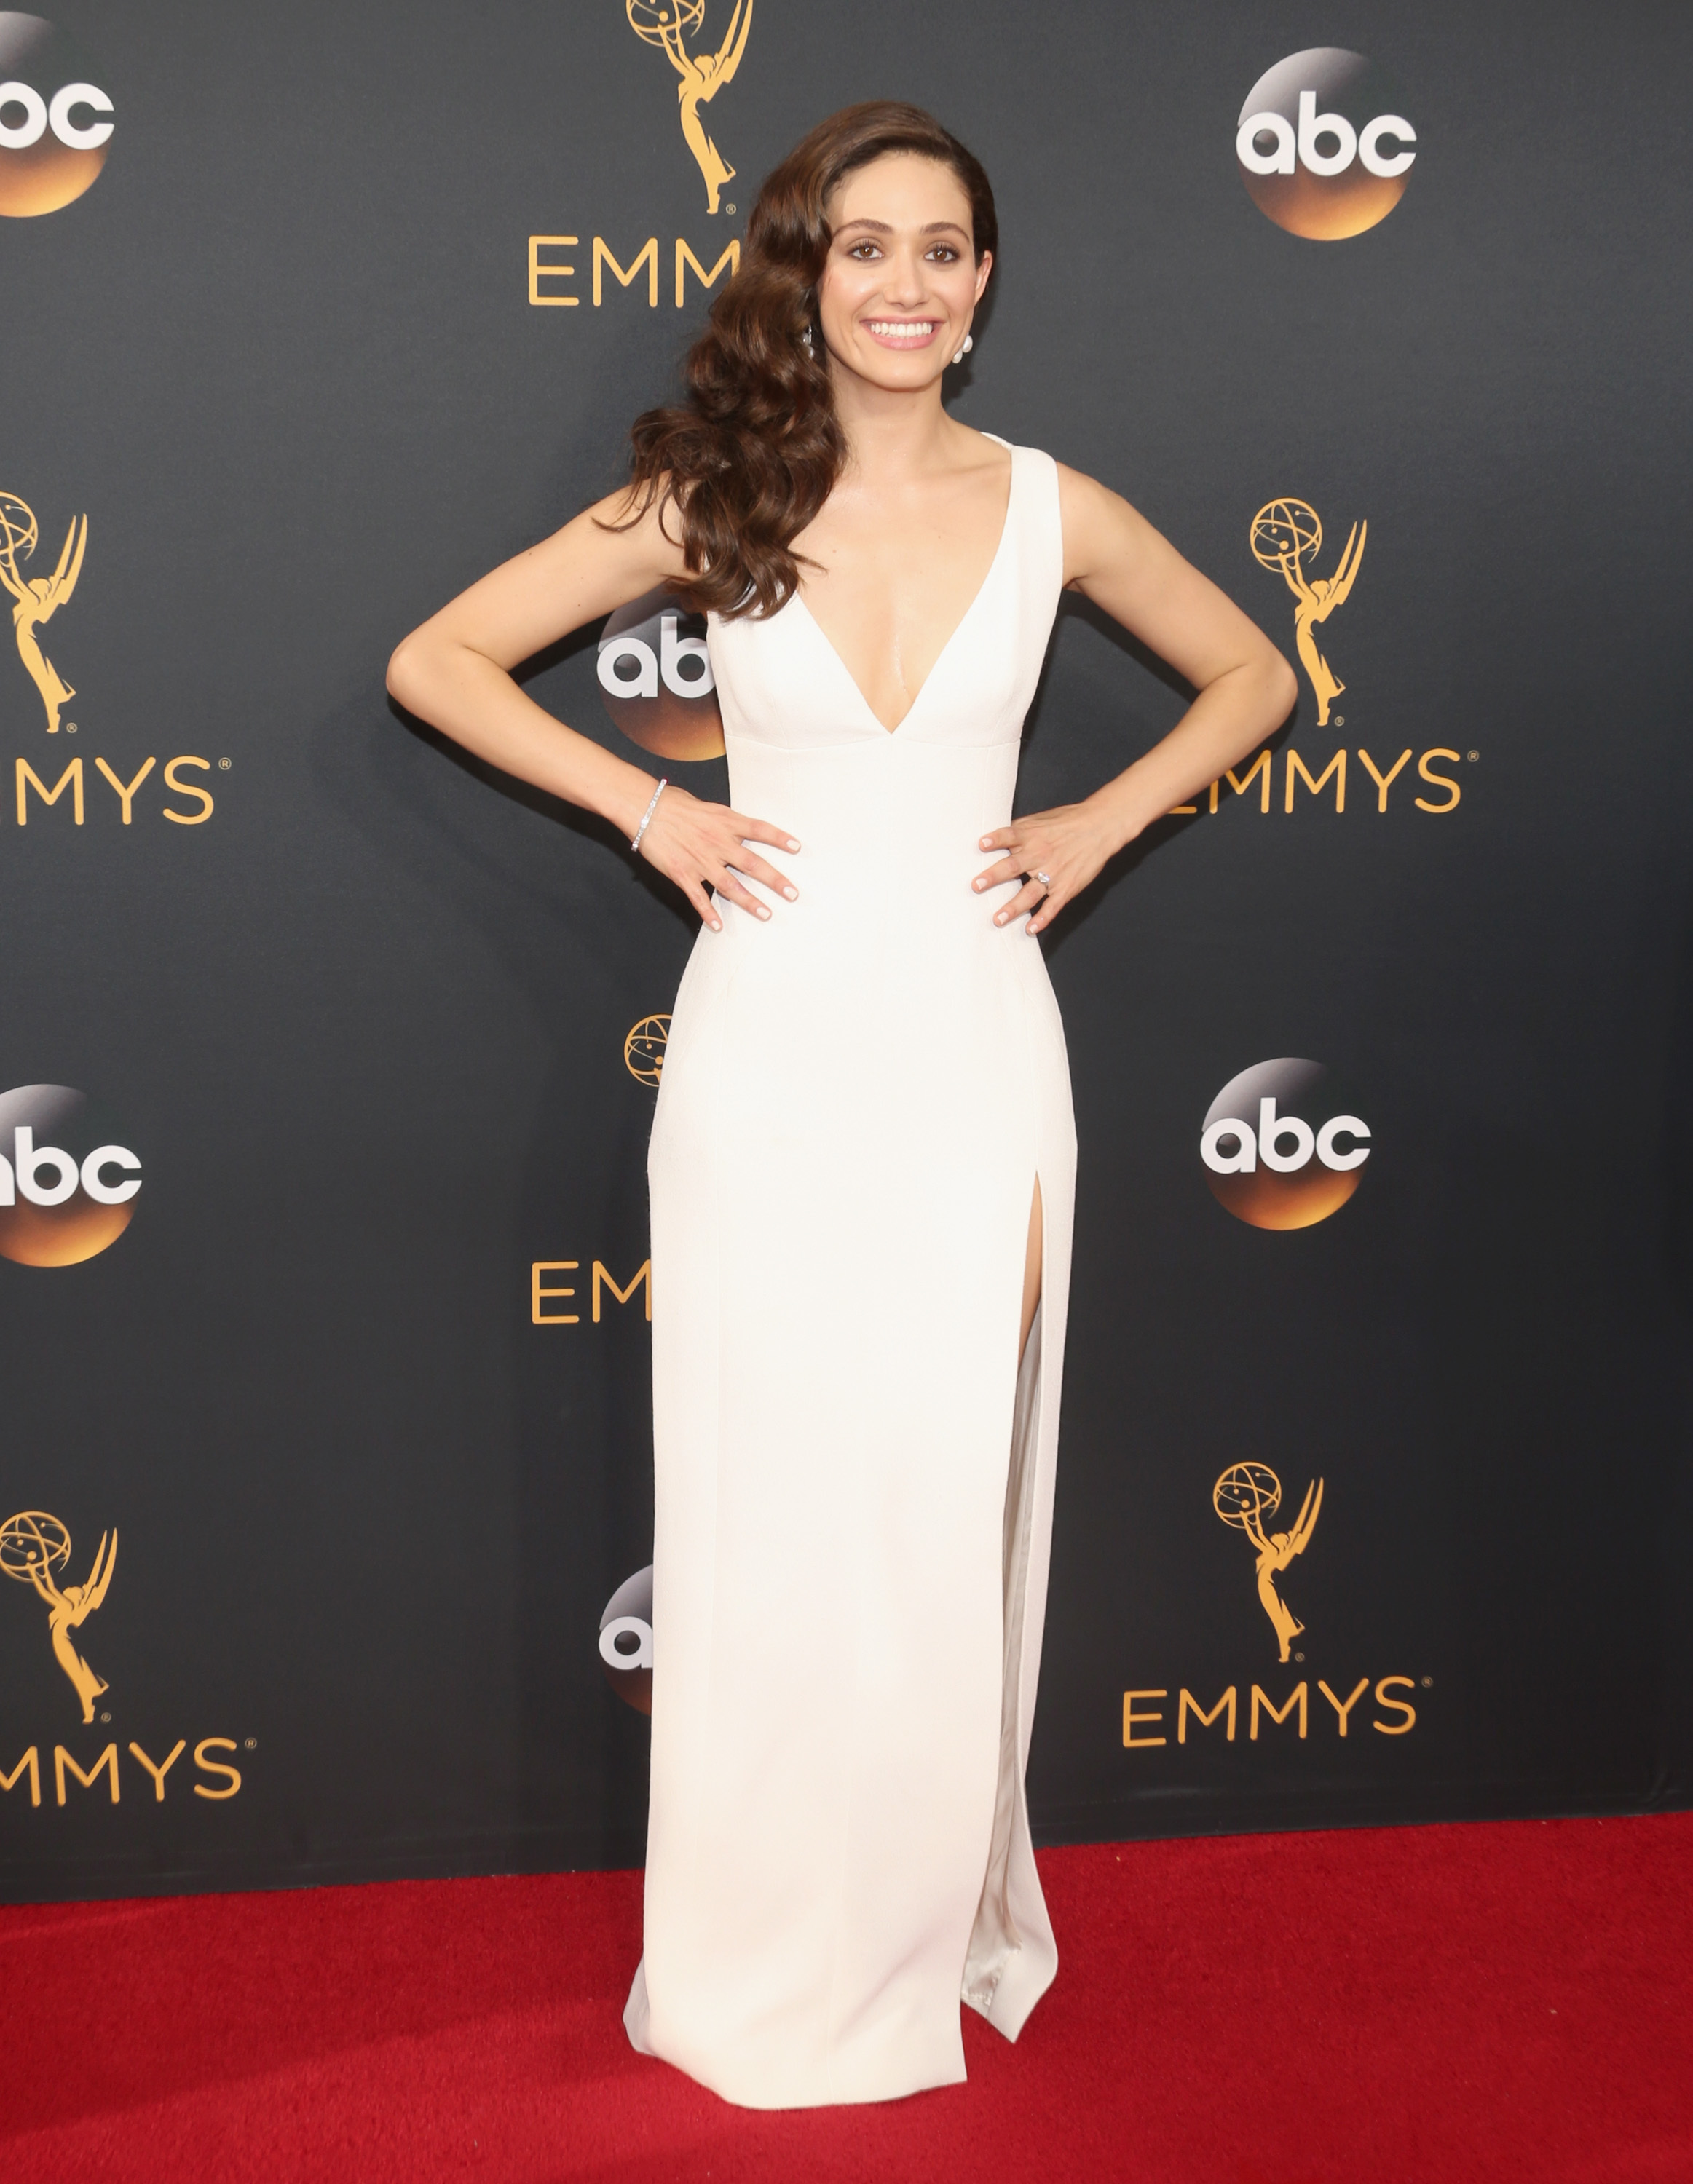 Emmy Rossum opens up about directing 'Shameless'